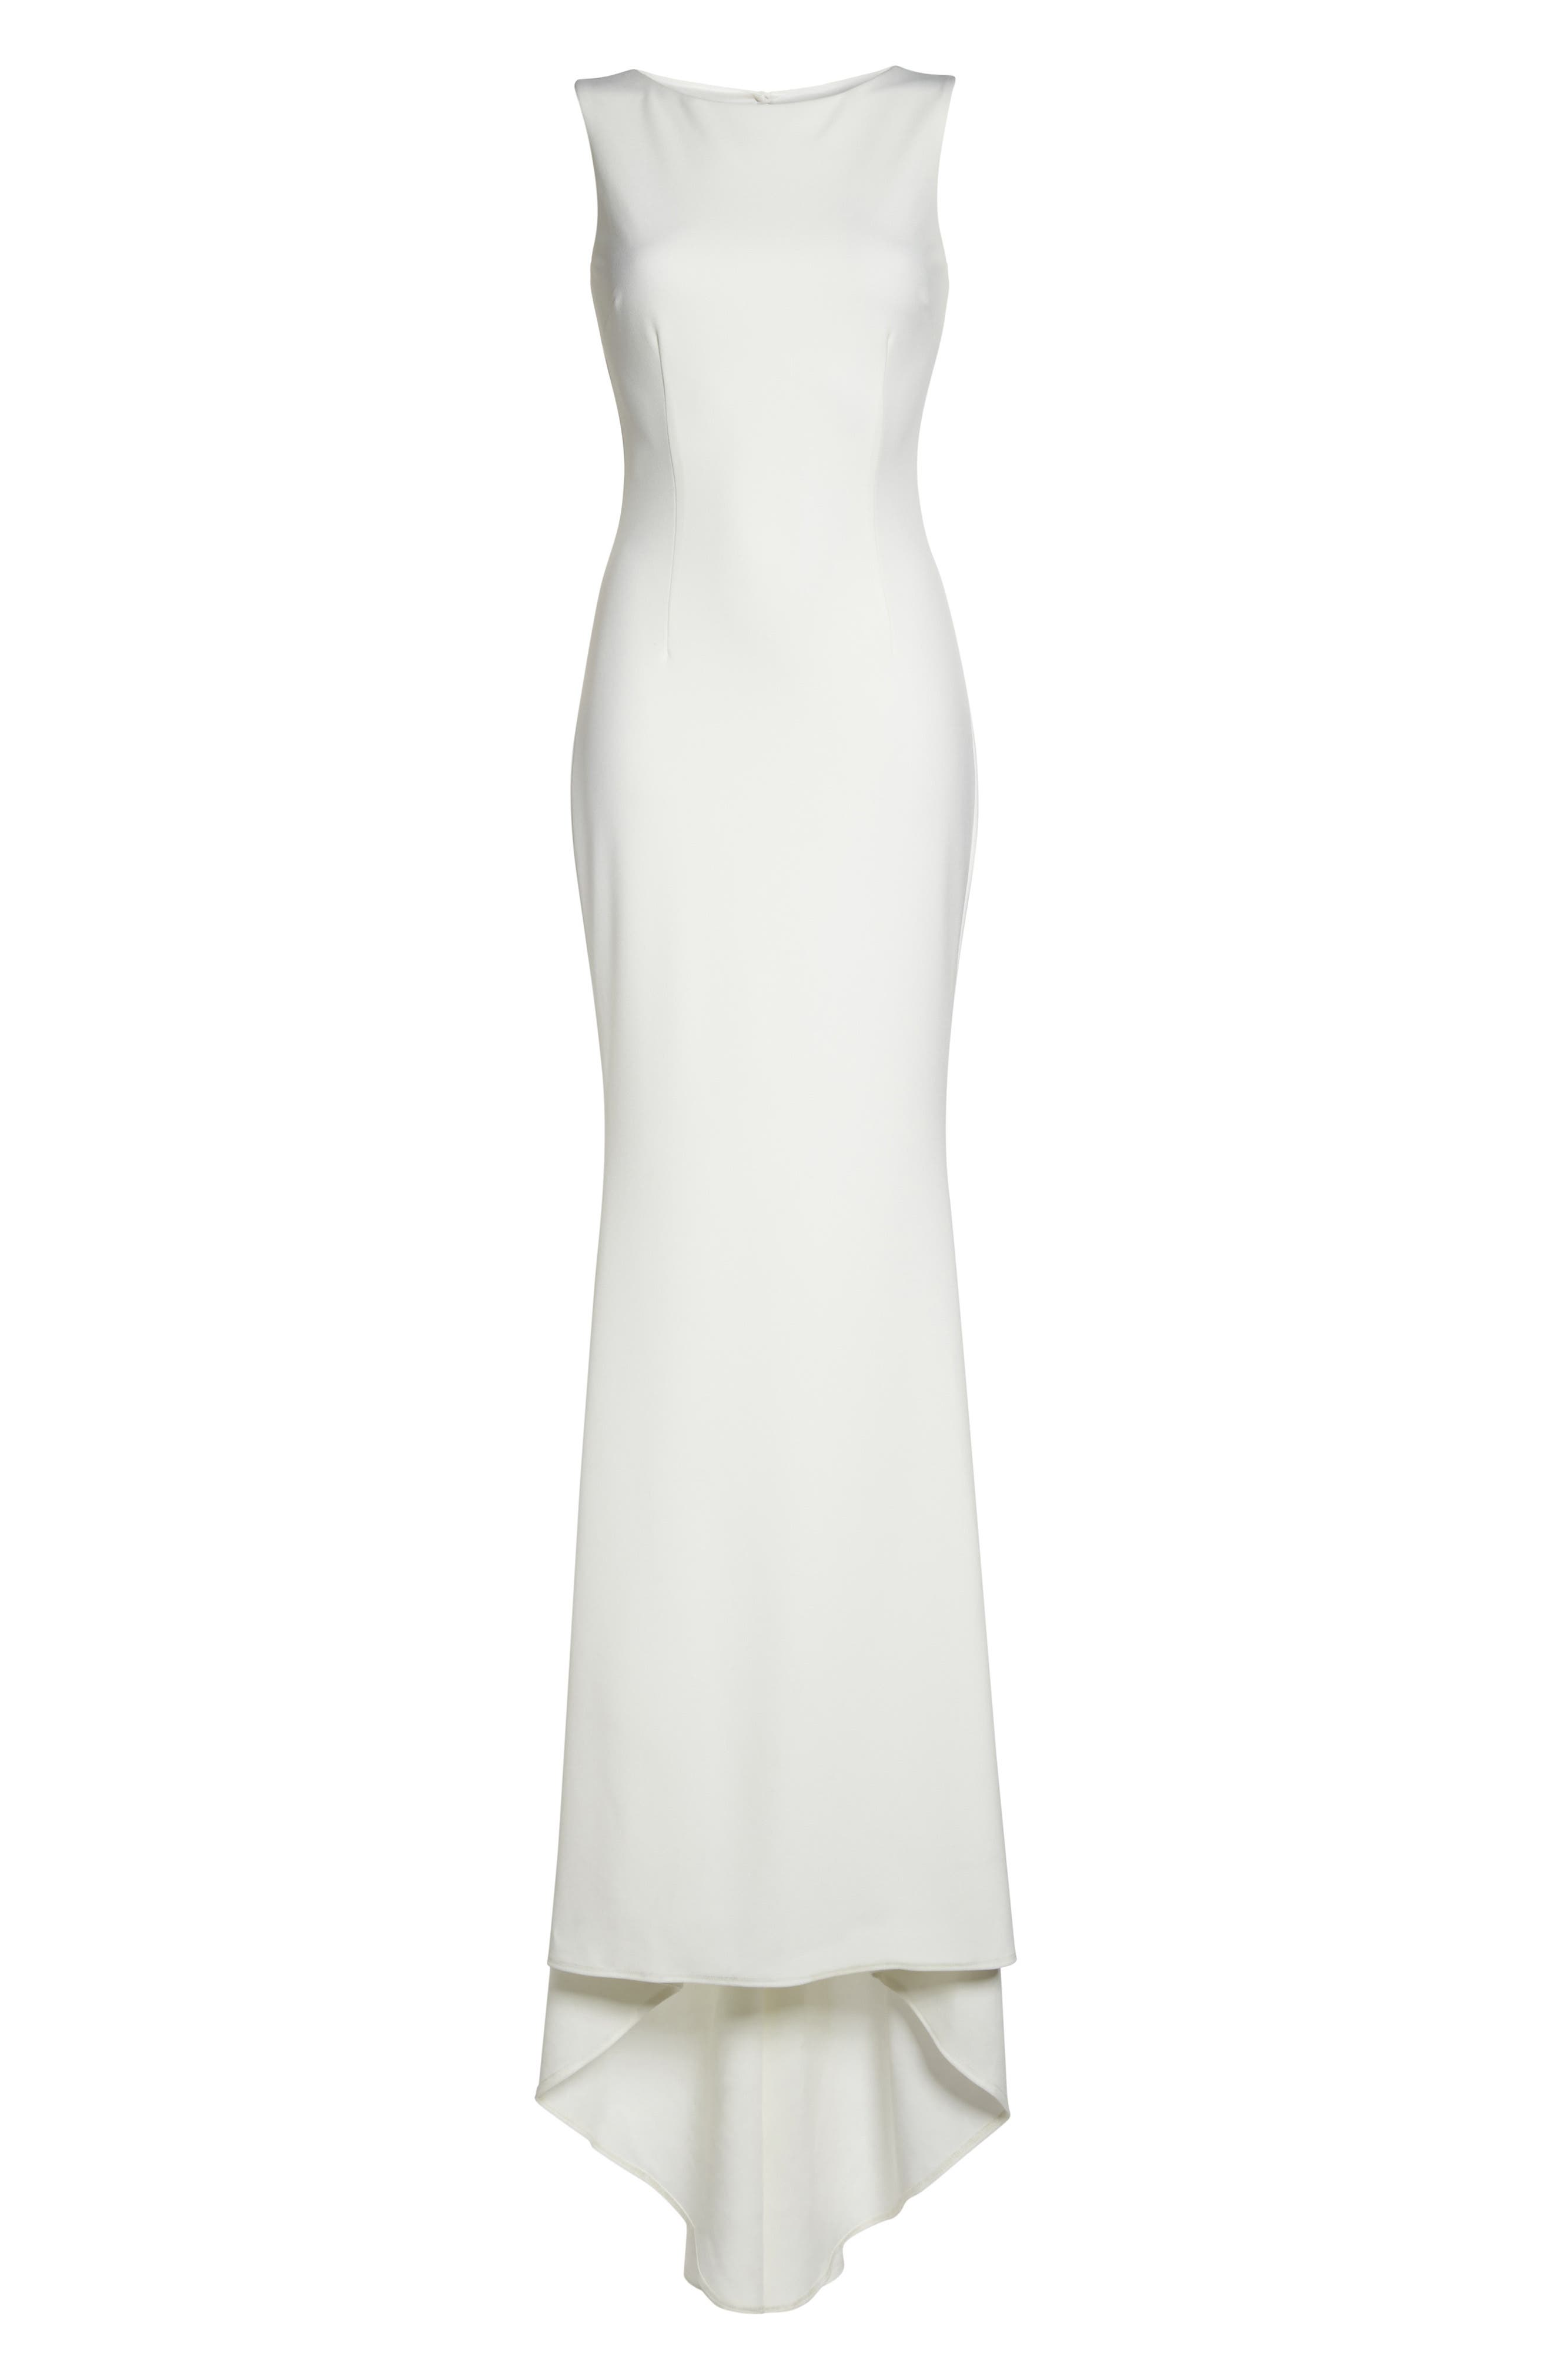 Low Back Crepe Mermaid Gown,                             Alternate thumbnail 12, color,                             Ivory